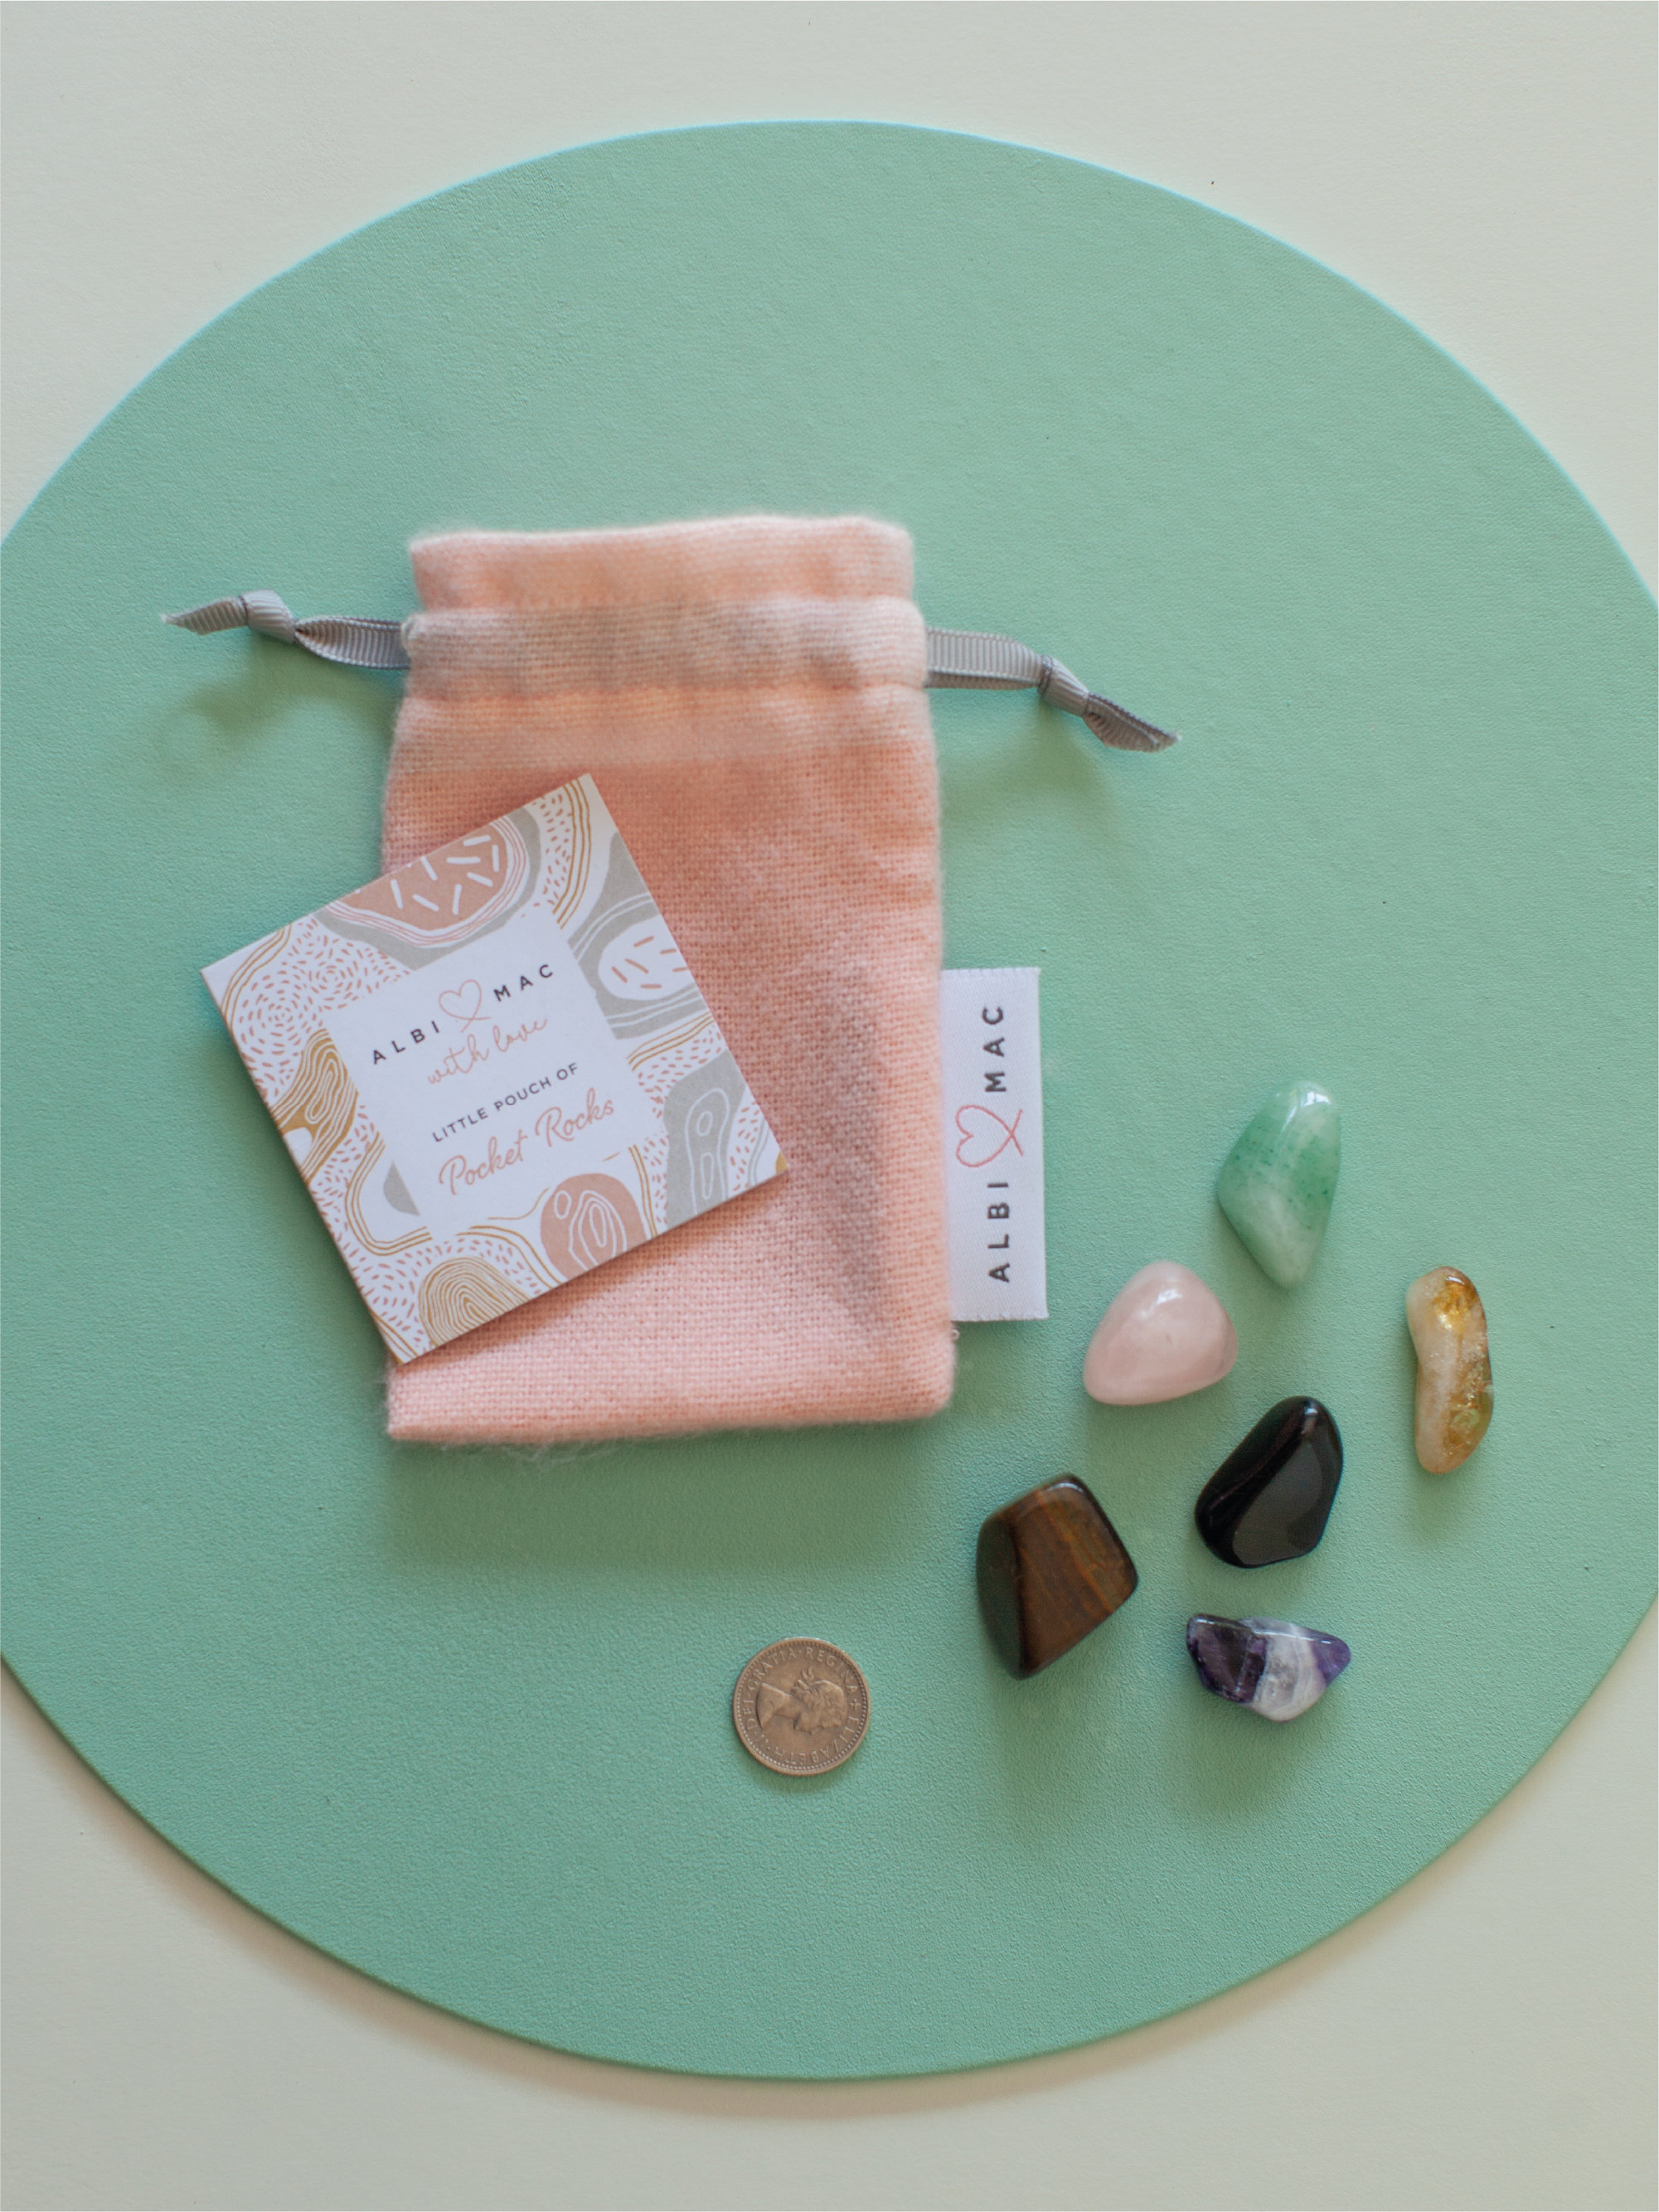 Albi & Mac pocket of rocks  which comes in a £25 gift box